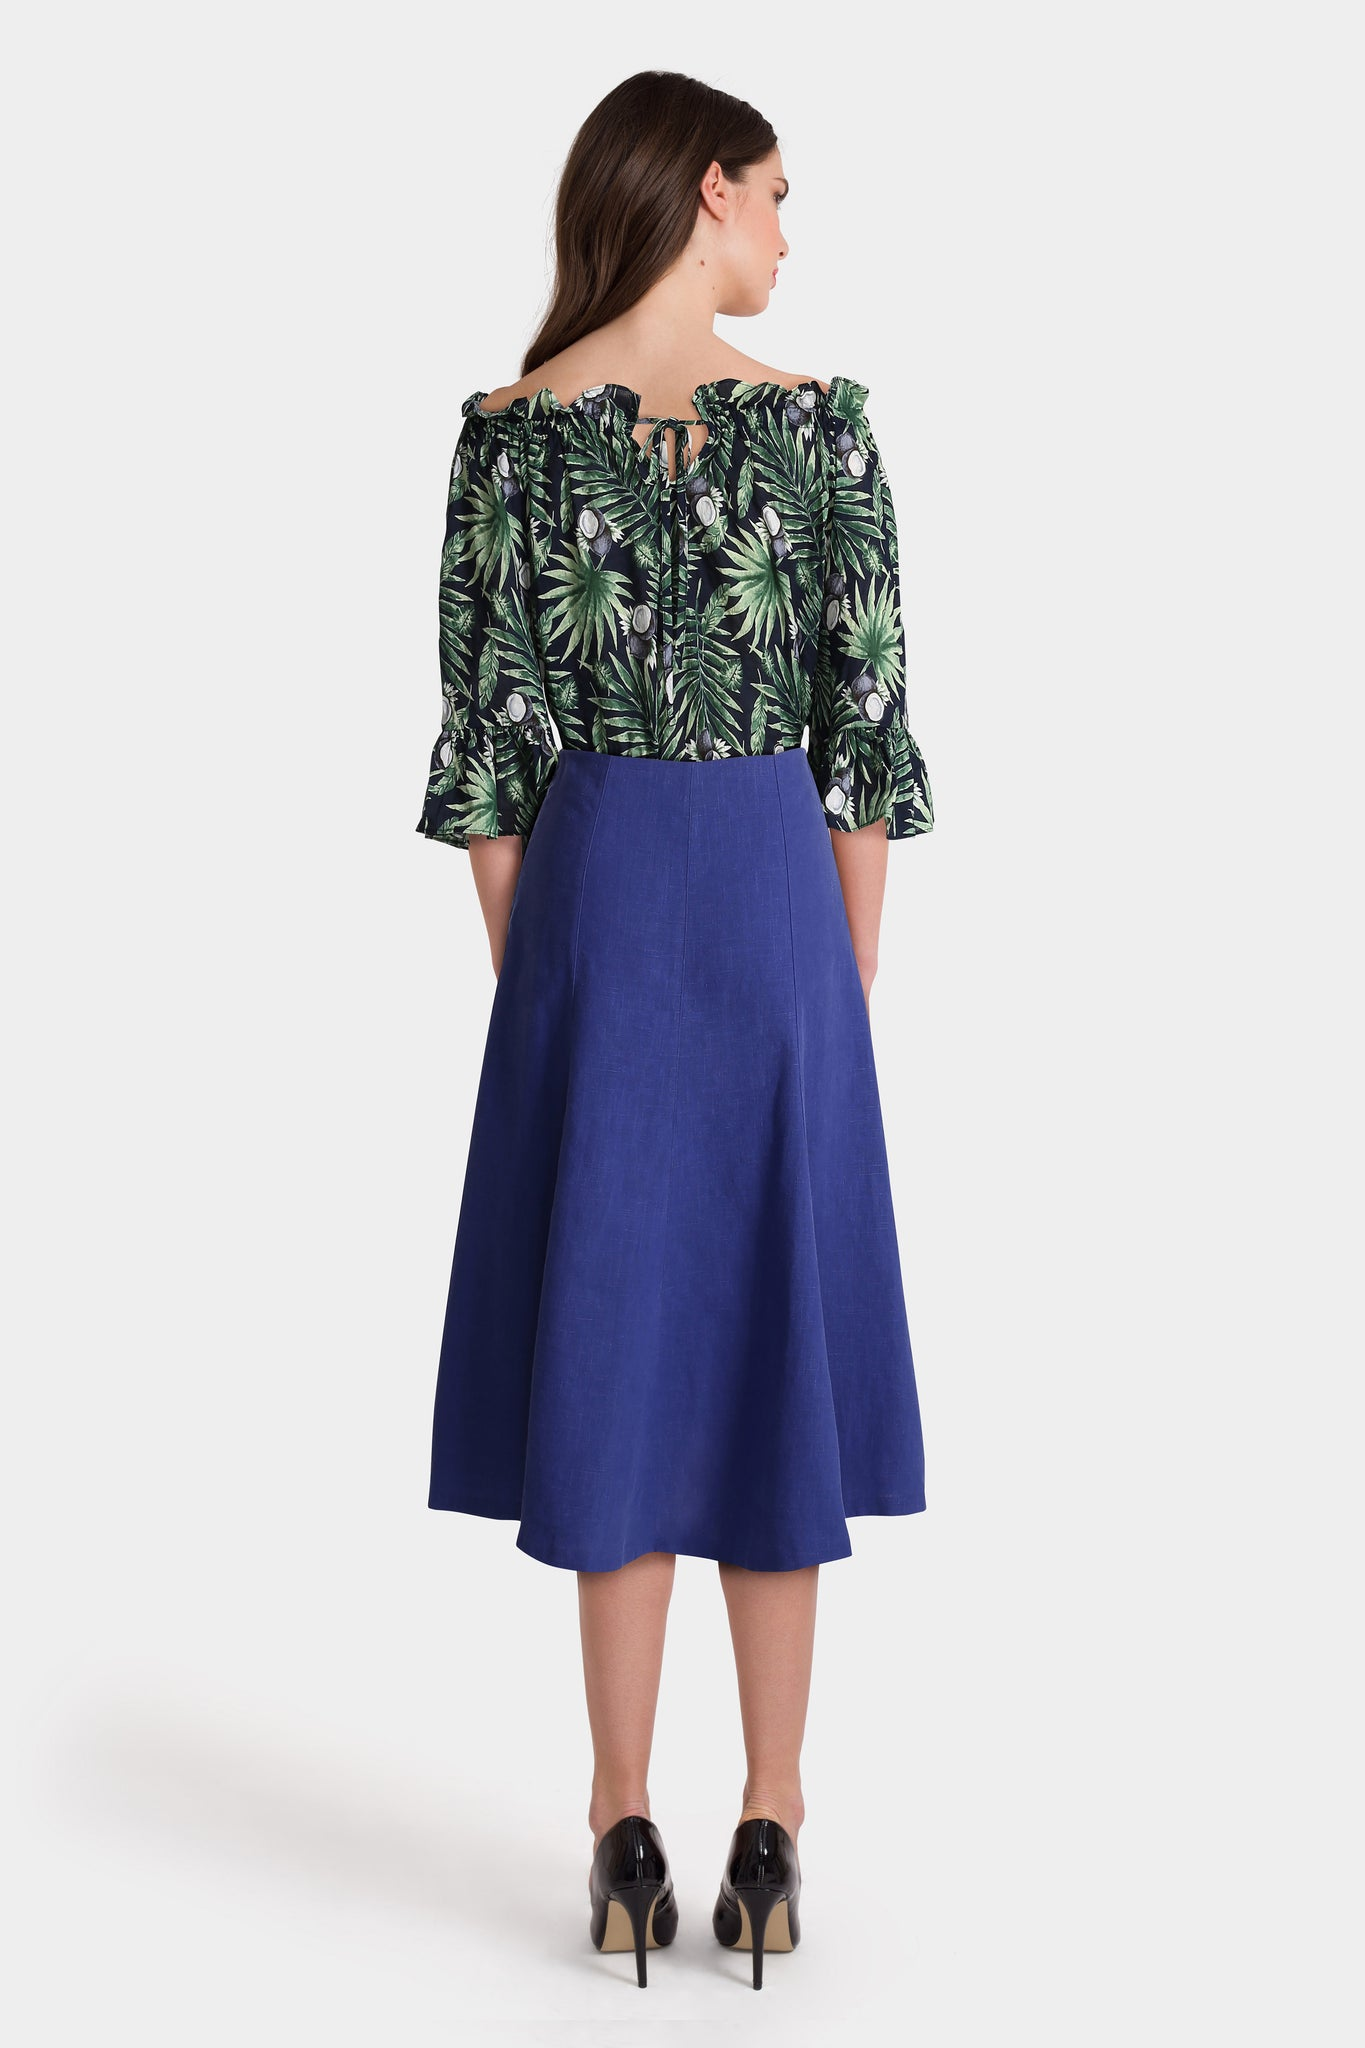 Green Print Top & Long Blue Skirt